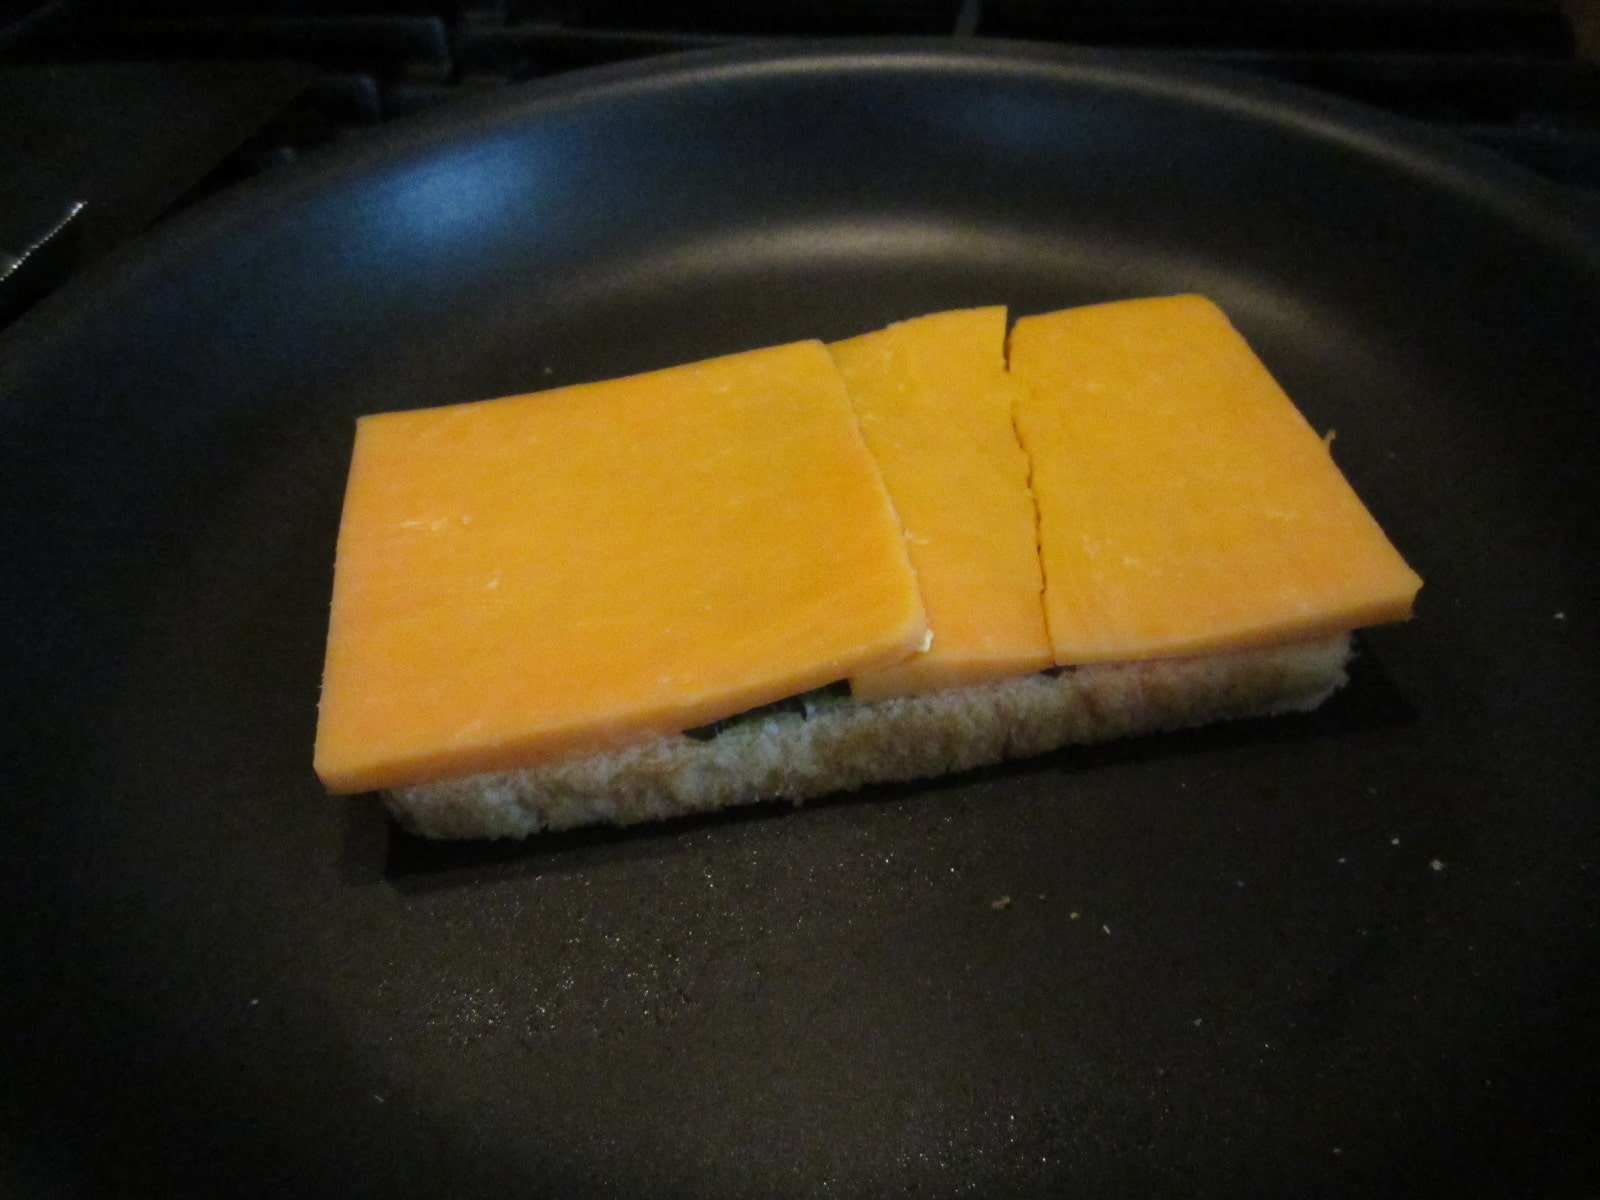 A couple good, hearty slices of sharp cheddar.